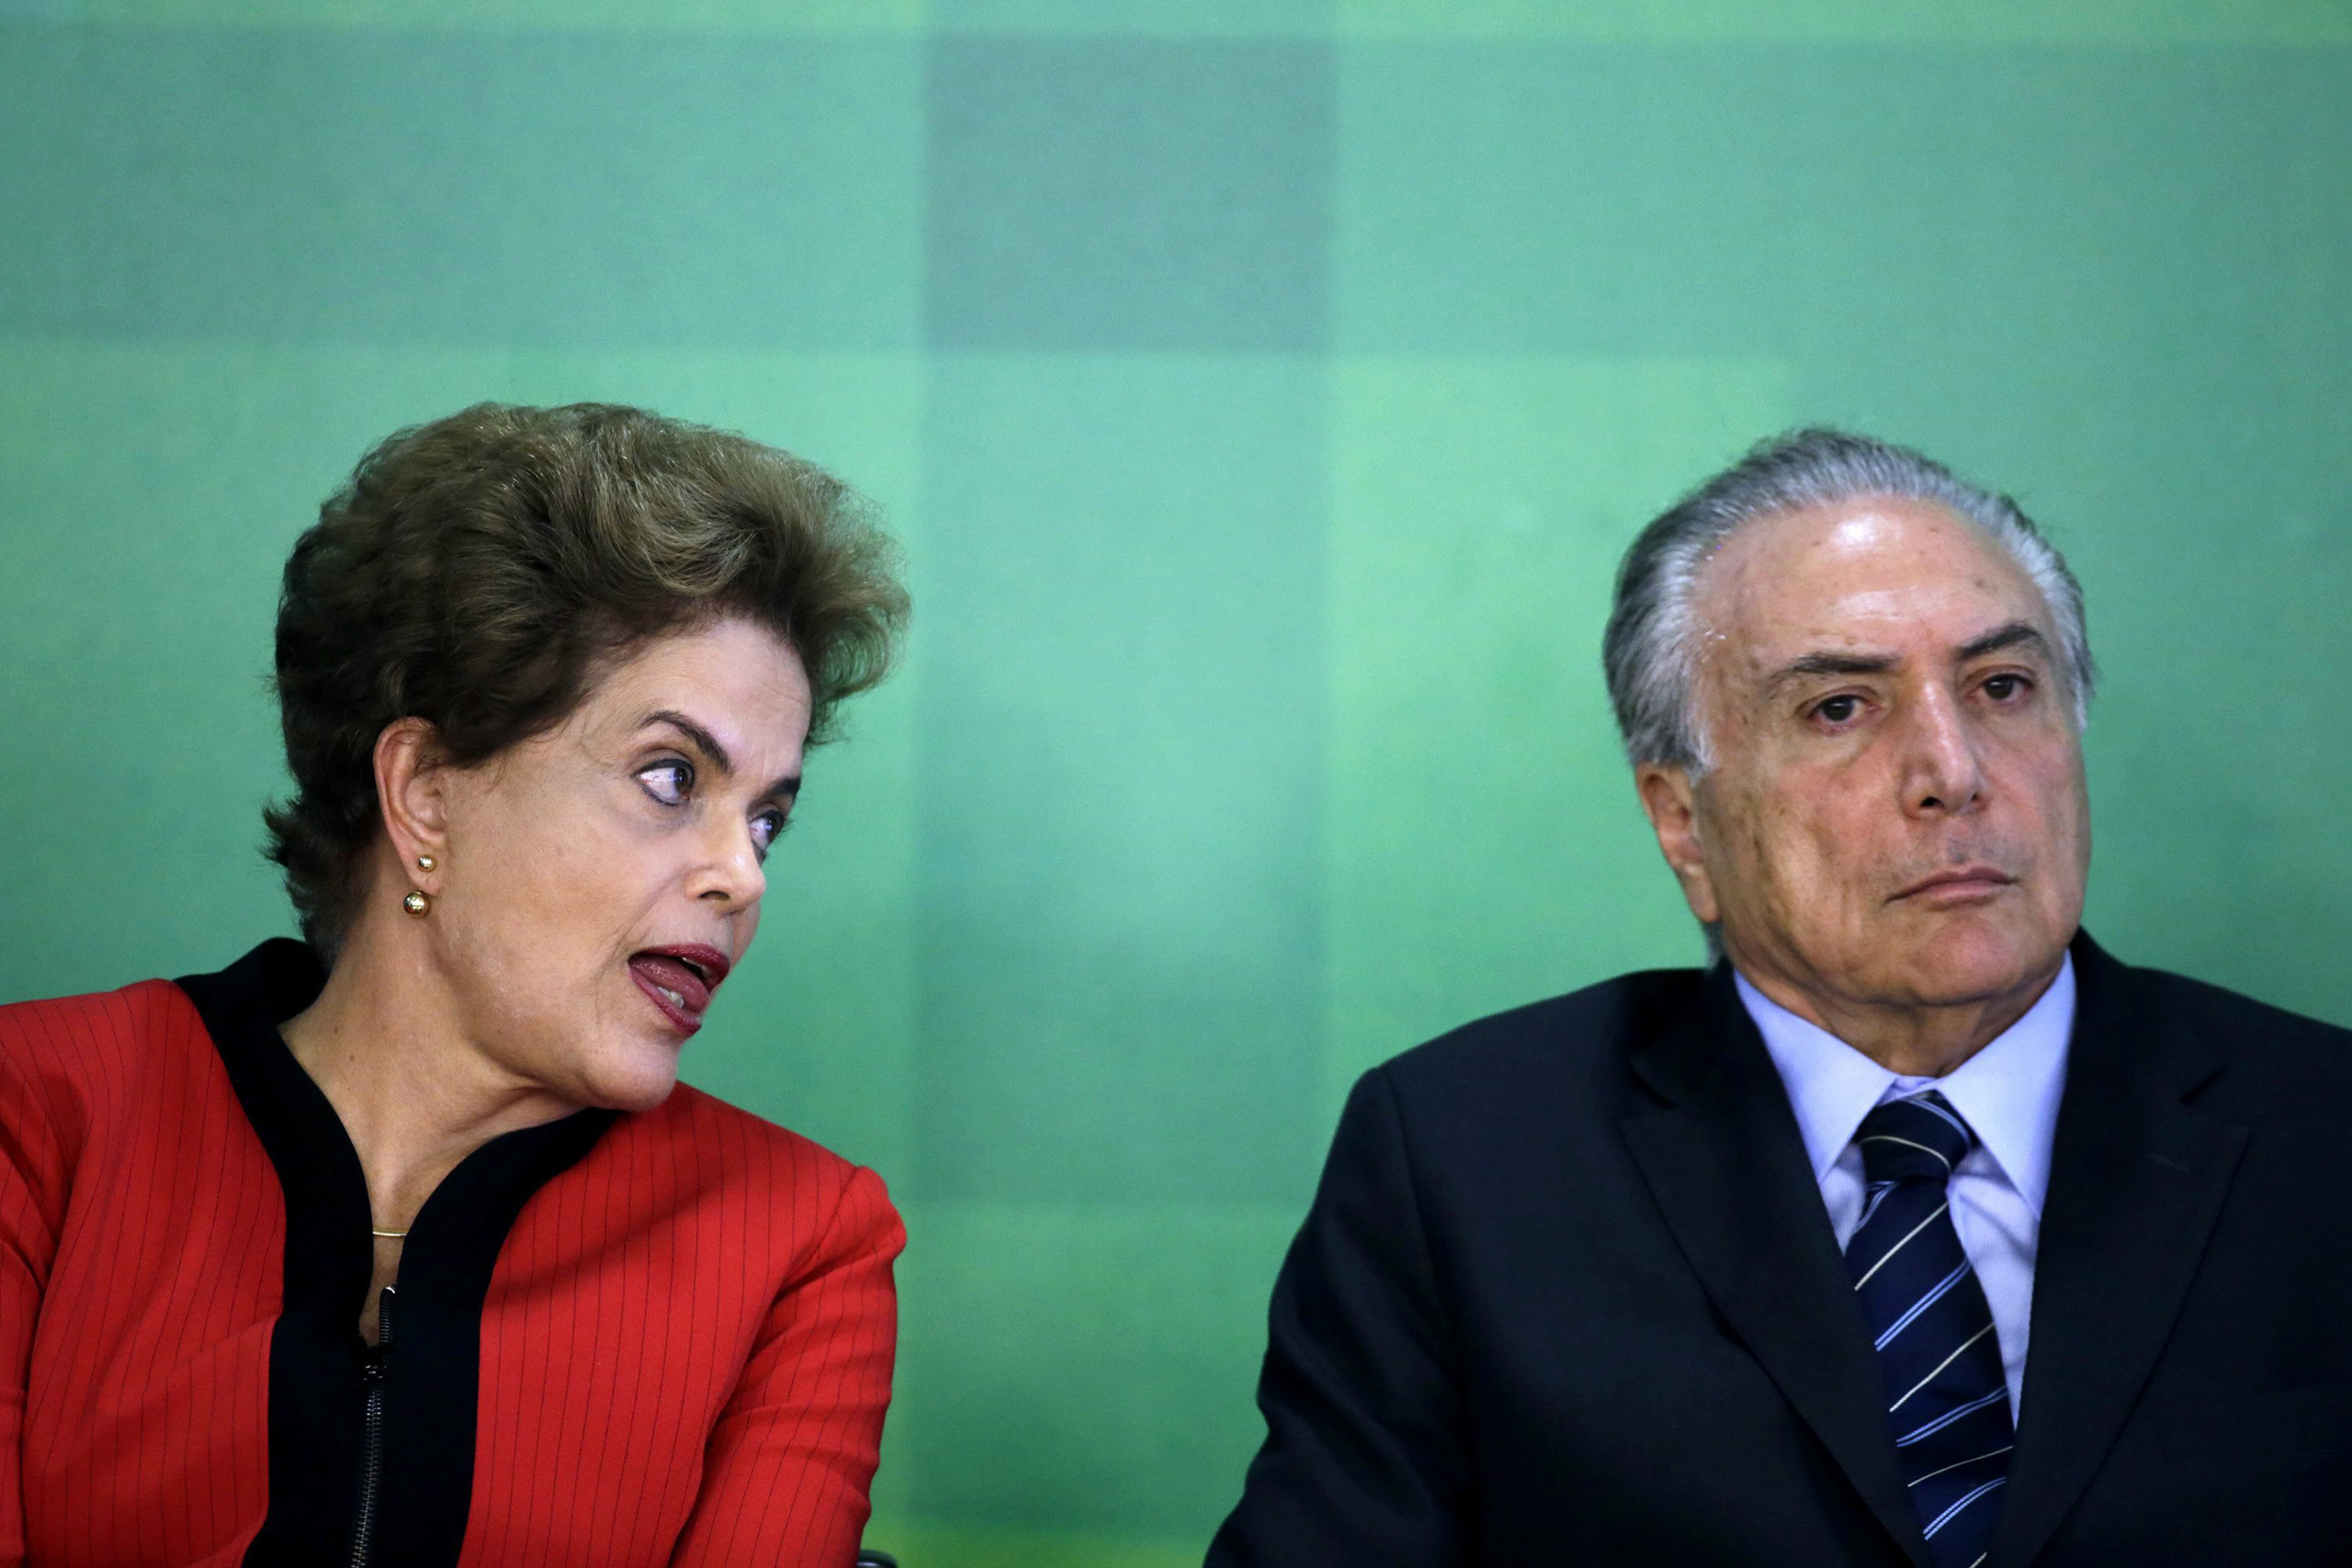 Brazilian President Dilma Rousseff and Brazilian Vice President Michel Temer during a news conference in Brasilia, March 2, 2016.